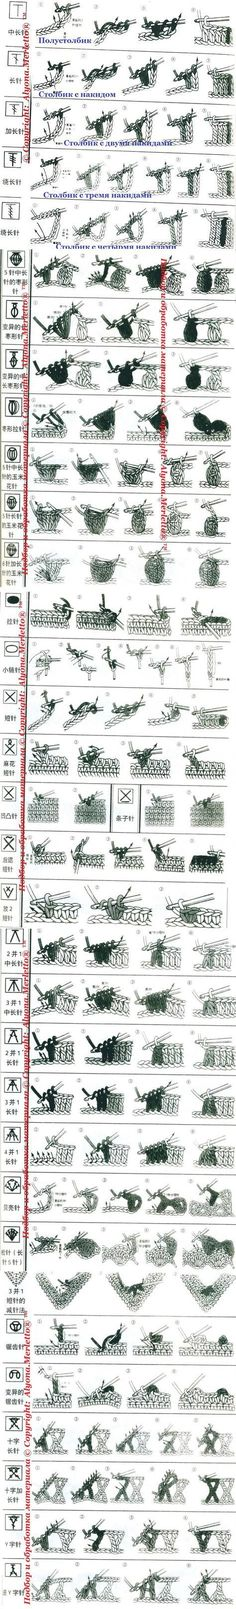 Sure the language isn't great but good visual of different crochet stitches